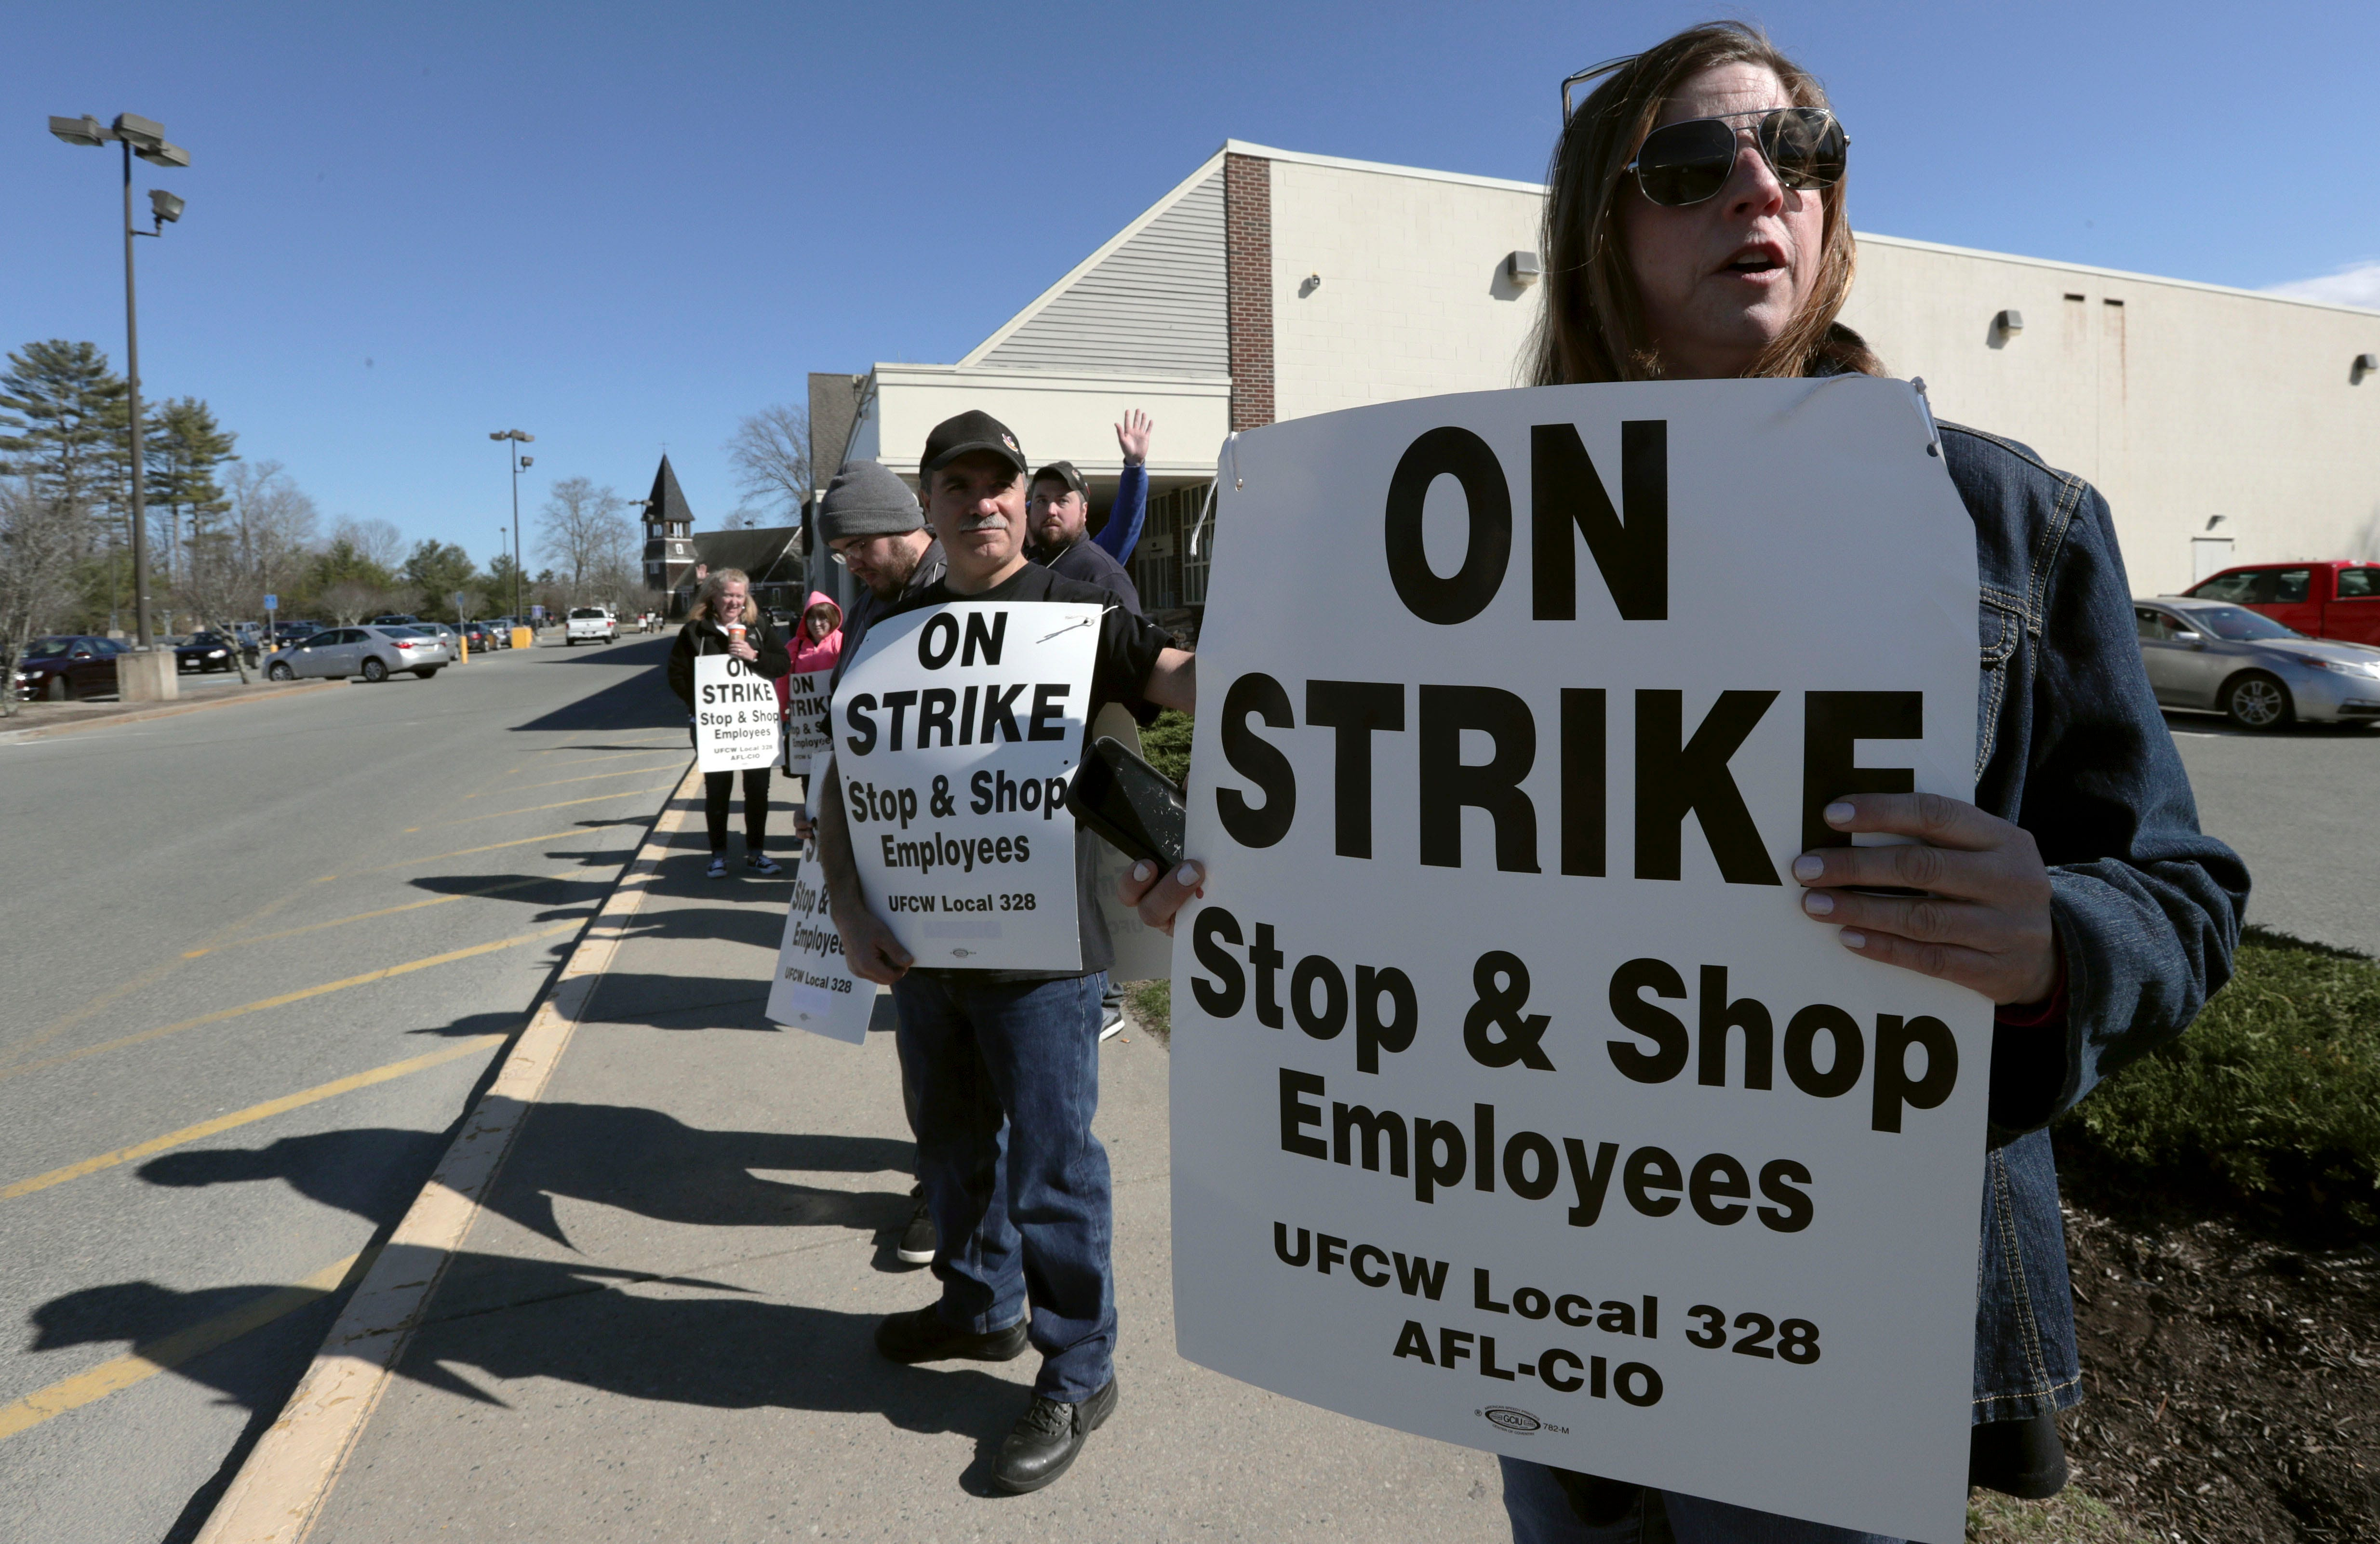 Latest on stop and shop strike 2019